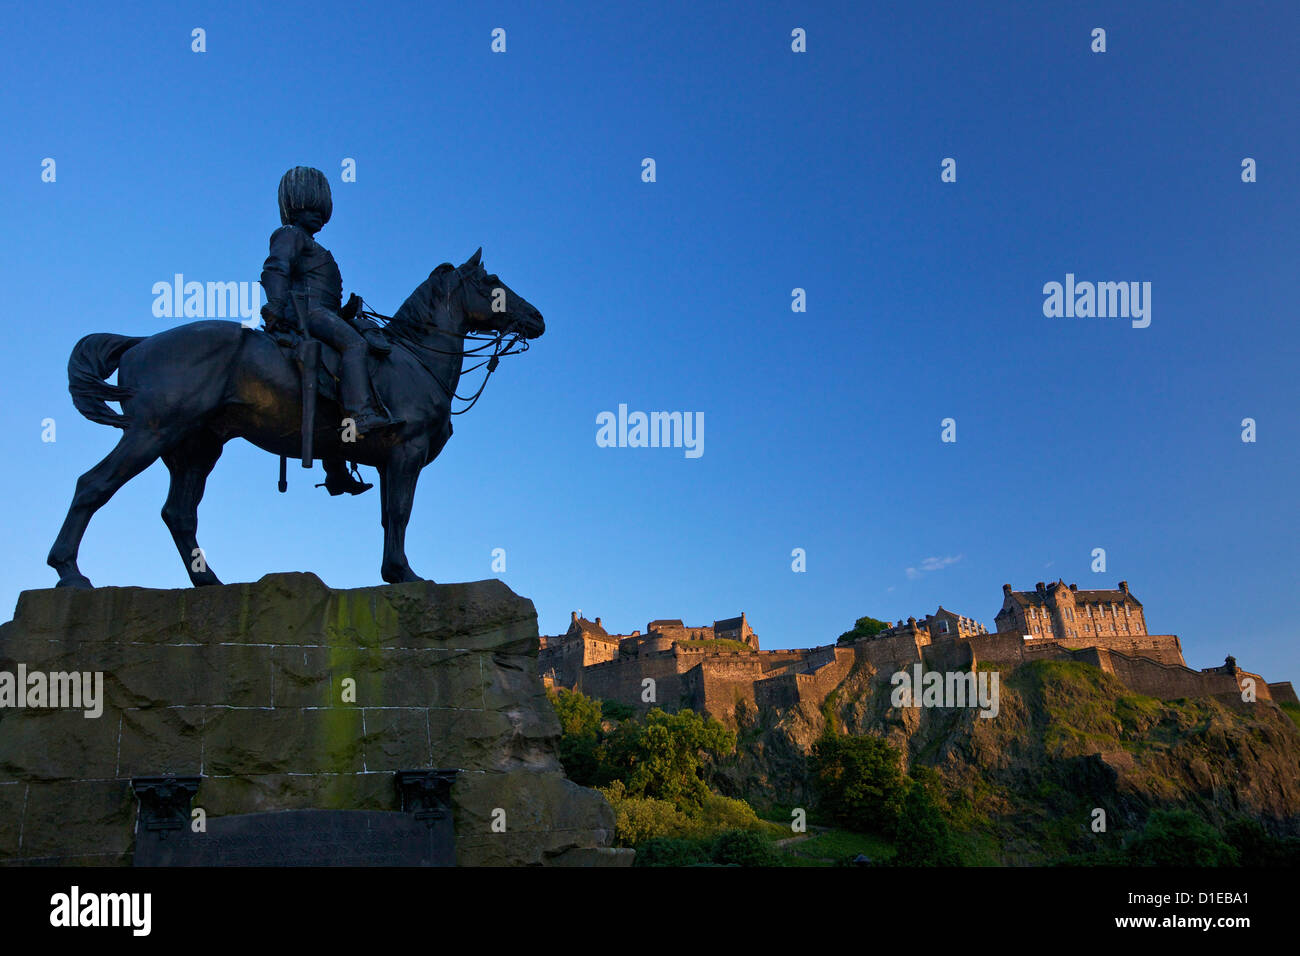 Royal Scots Greys Boer War memorial equestrian statue and Edinburgh Castle, Edinburgh, Scotland, United Kingdom, - Stock Image